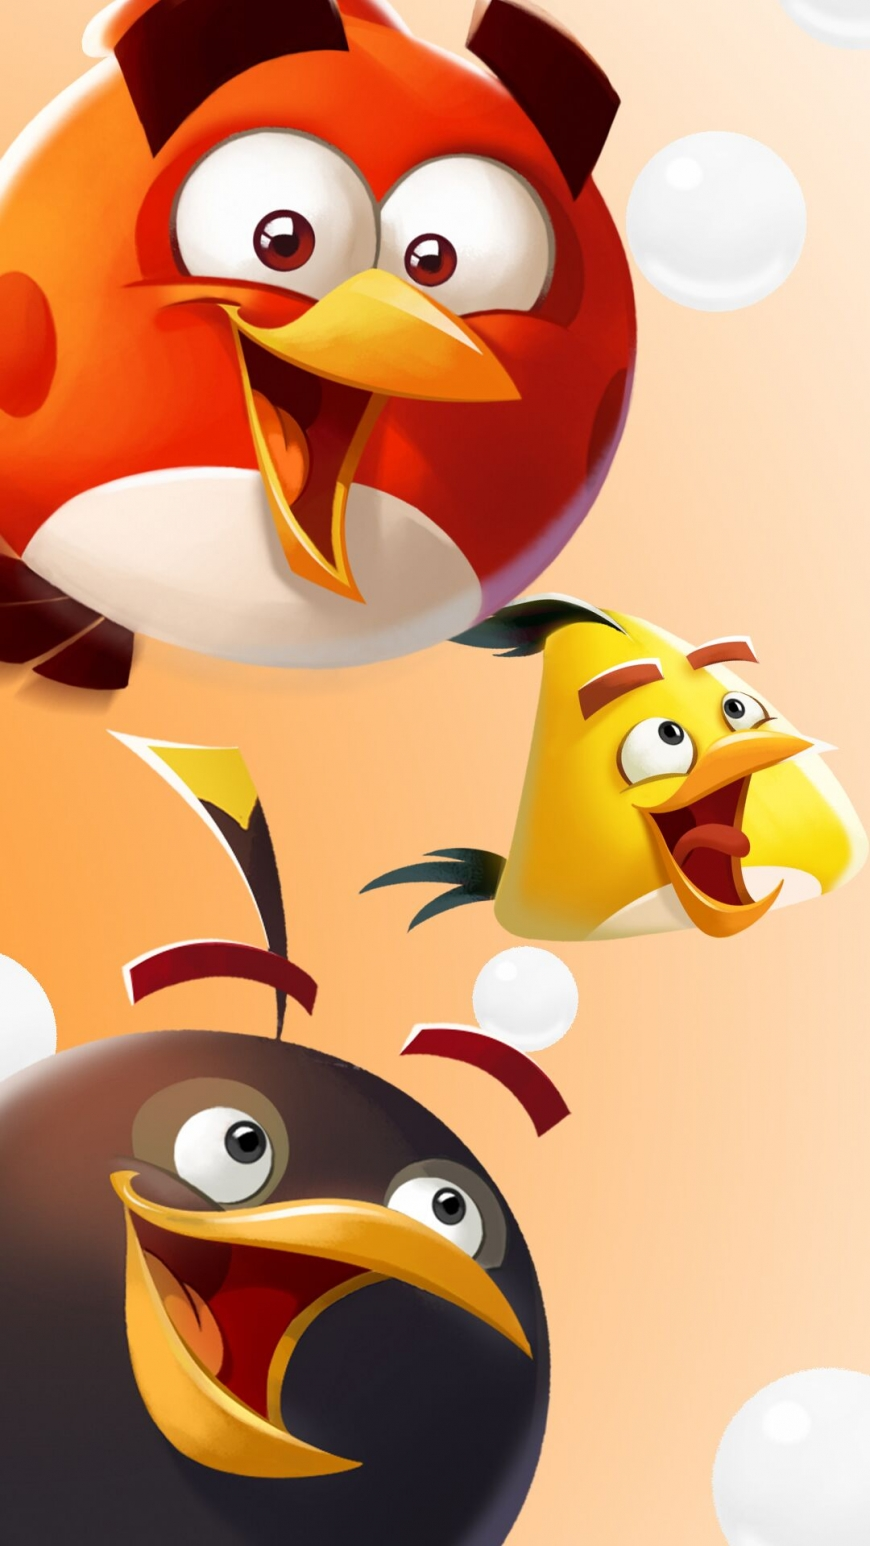 Angry Birds holiday wallpapers